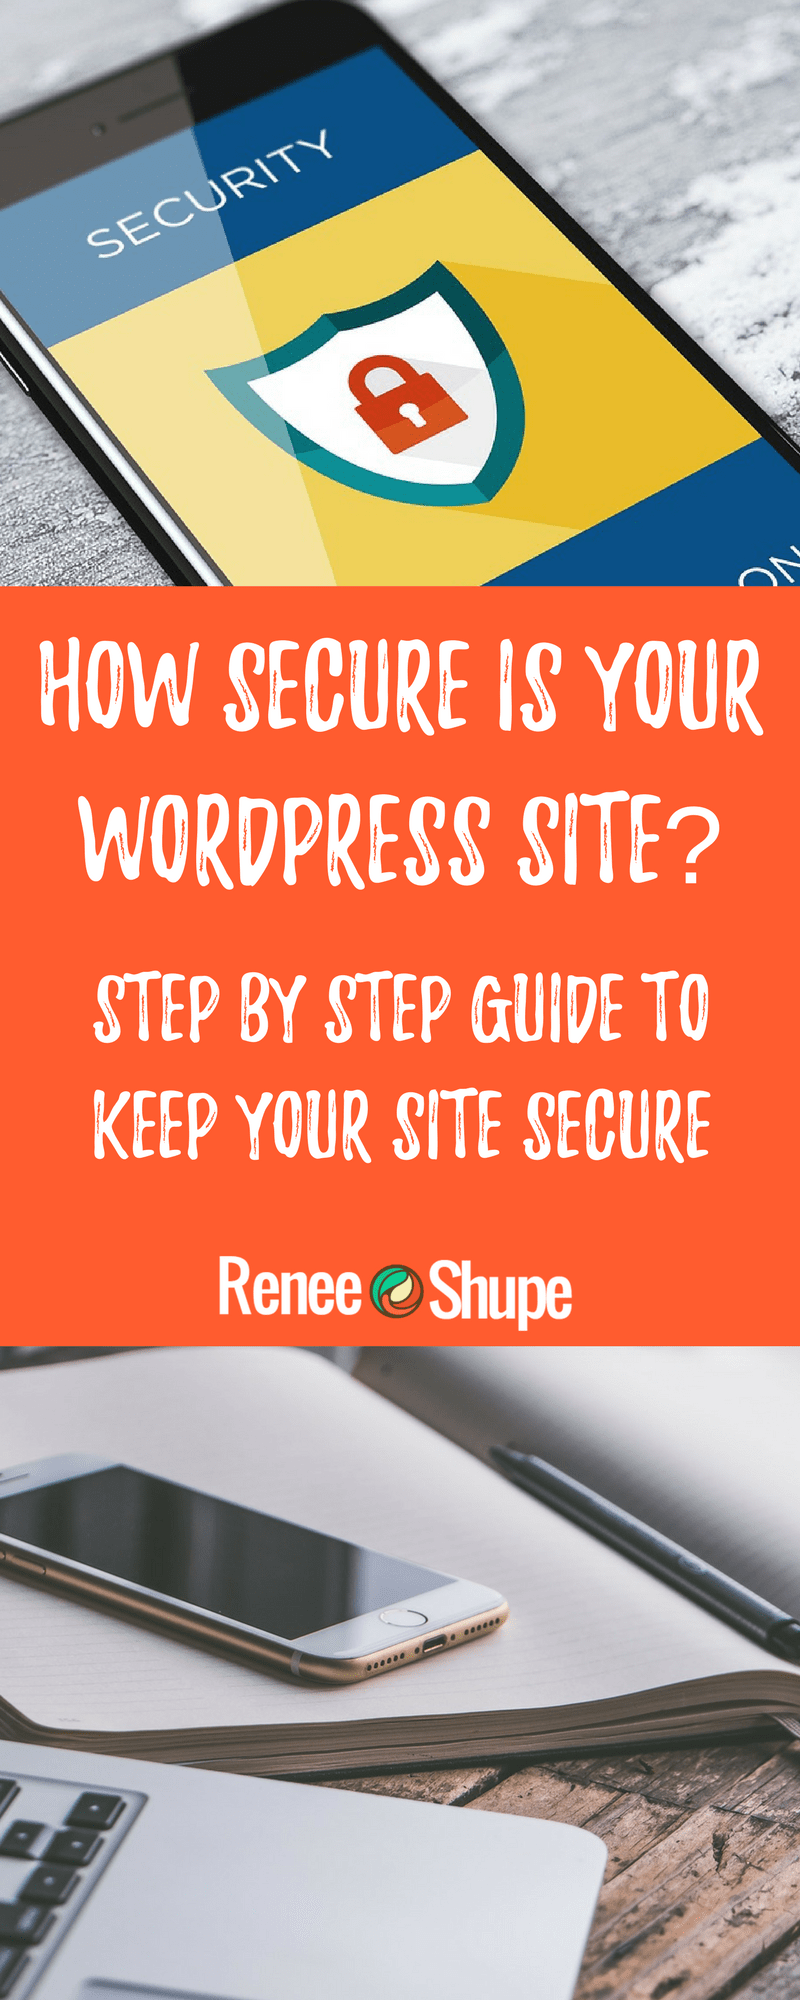 Step to Keep Your Website Secure